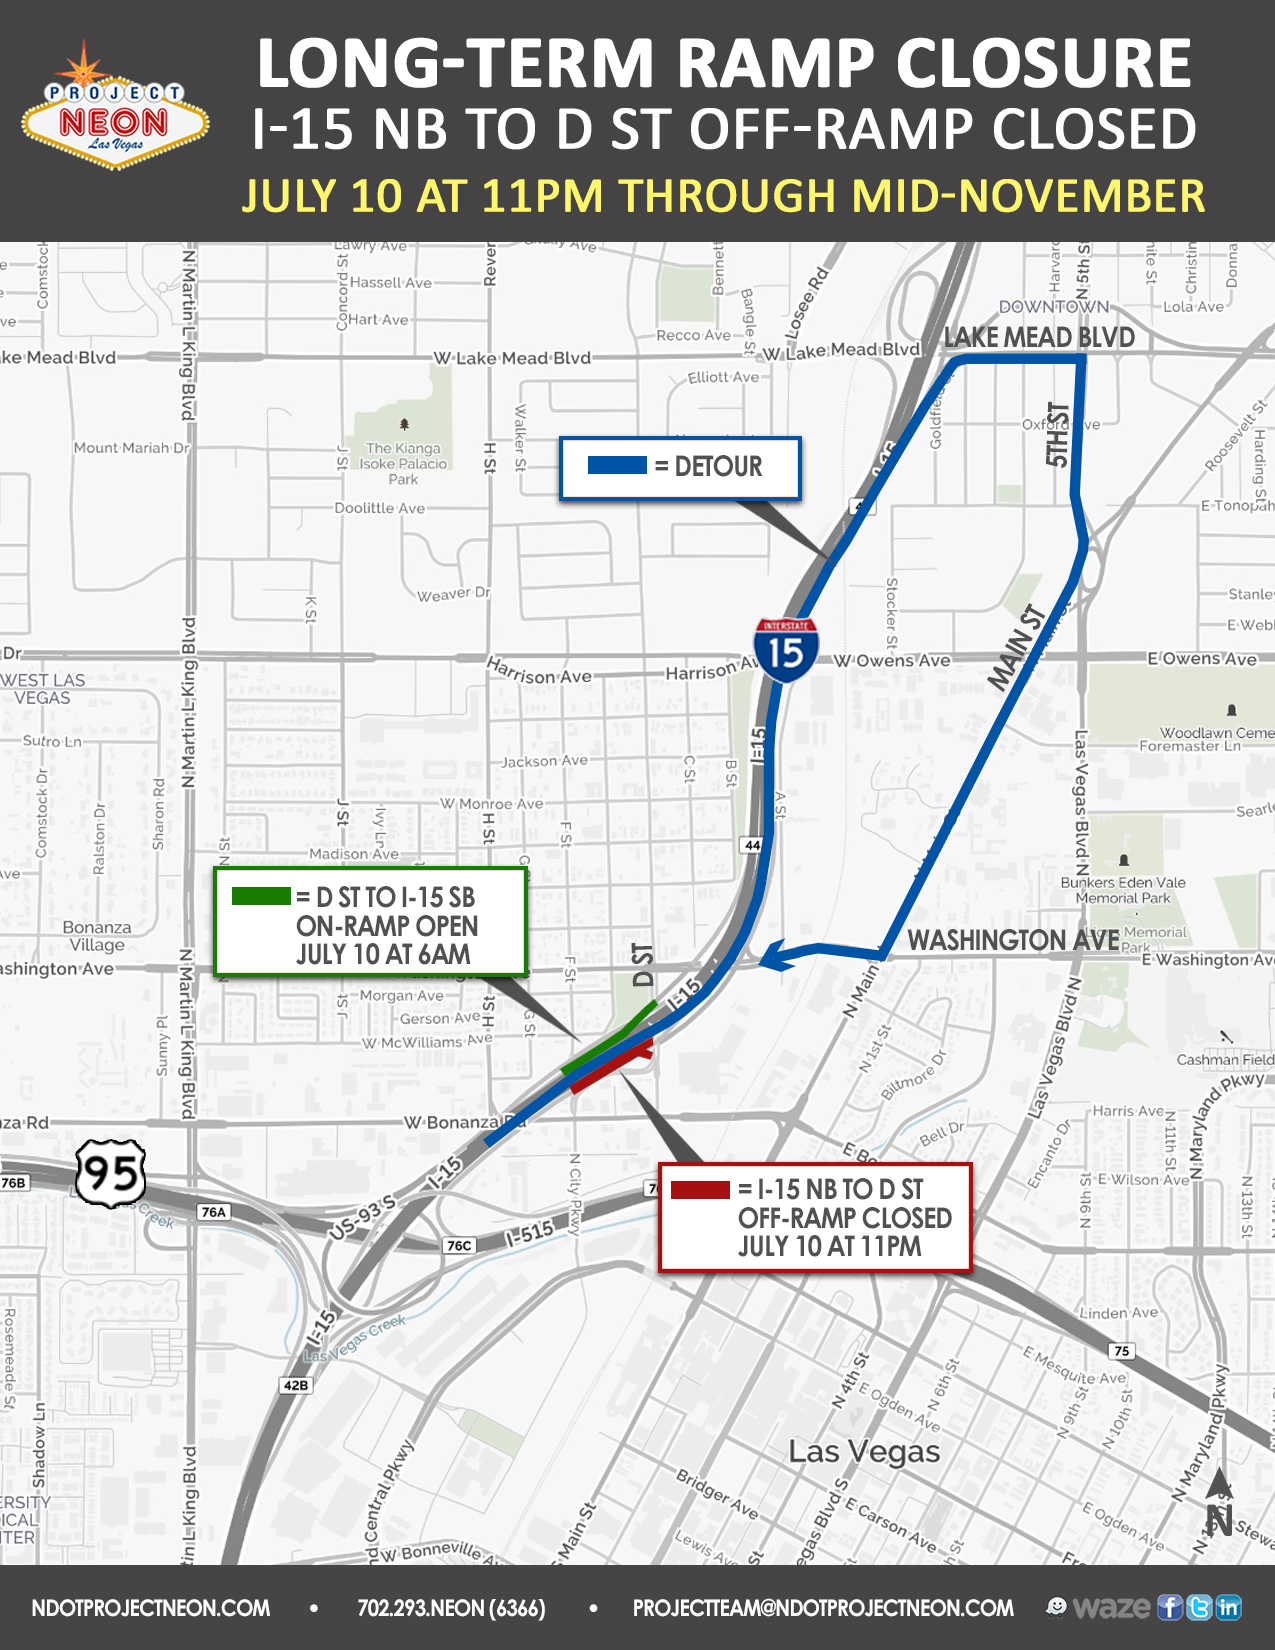 I-15 NB to D St Off-Ramp_7.10.18 to mid-Nov (003)